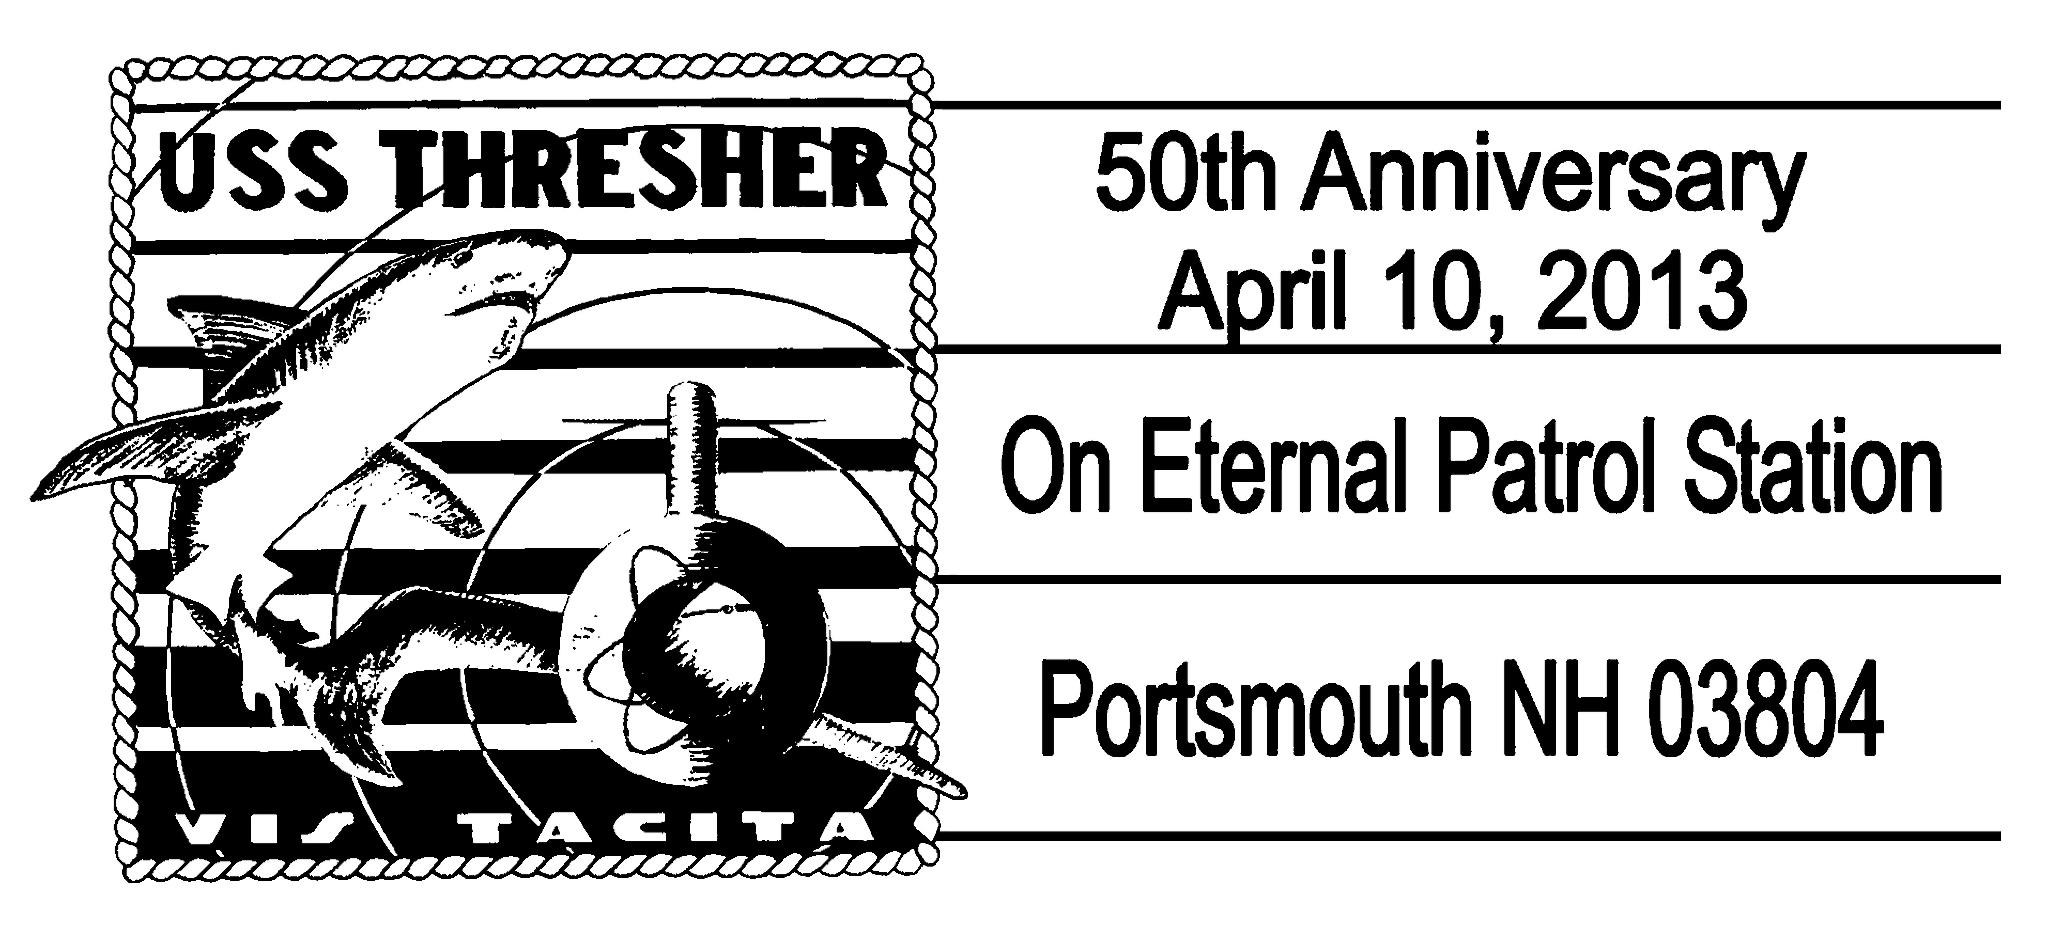 Sonderpoststempel USS THRESHER SSN-593 Portsmouth, NHDesign: USCS